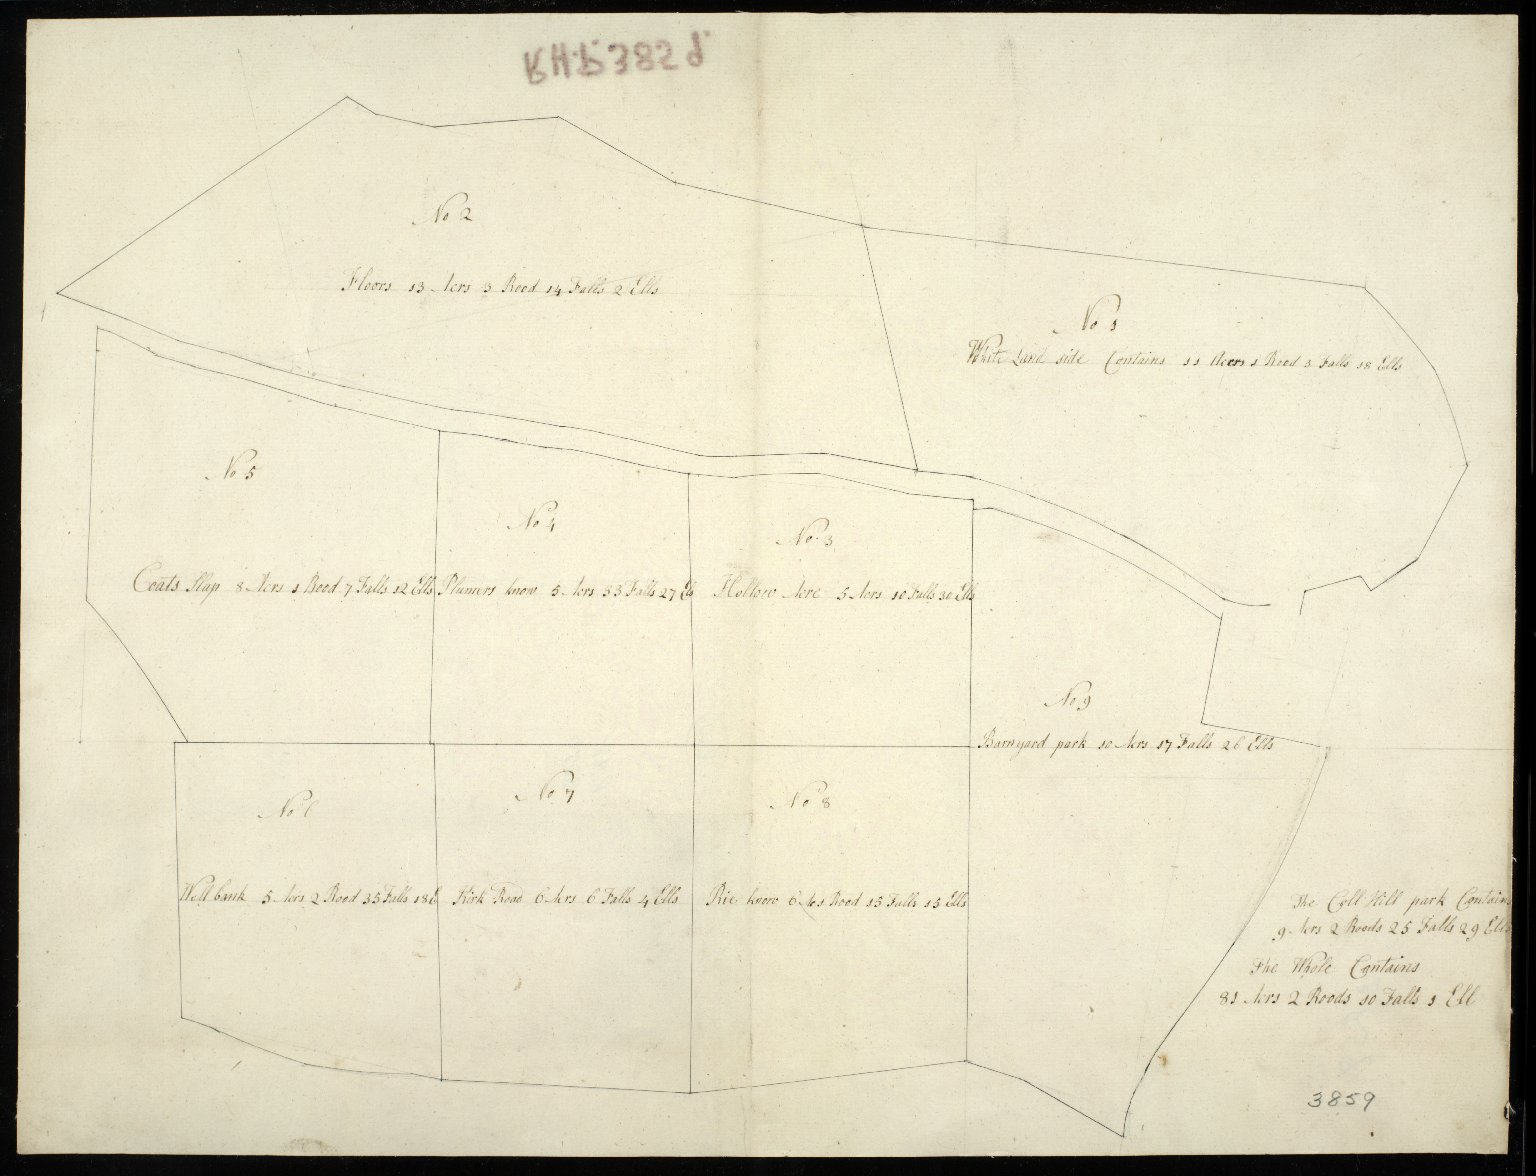 [Map of the Farm at Loanhead] [1 of 1]